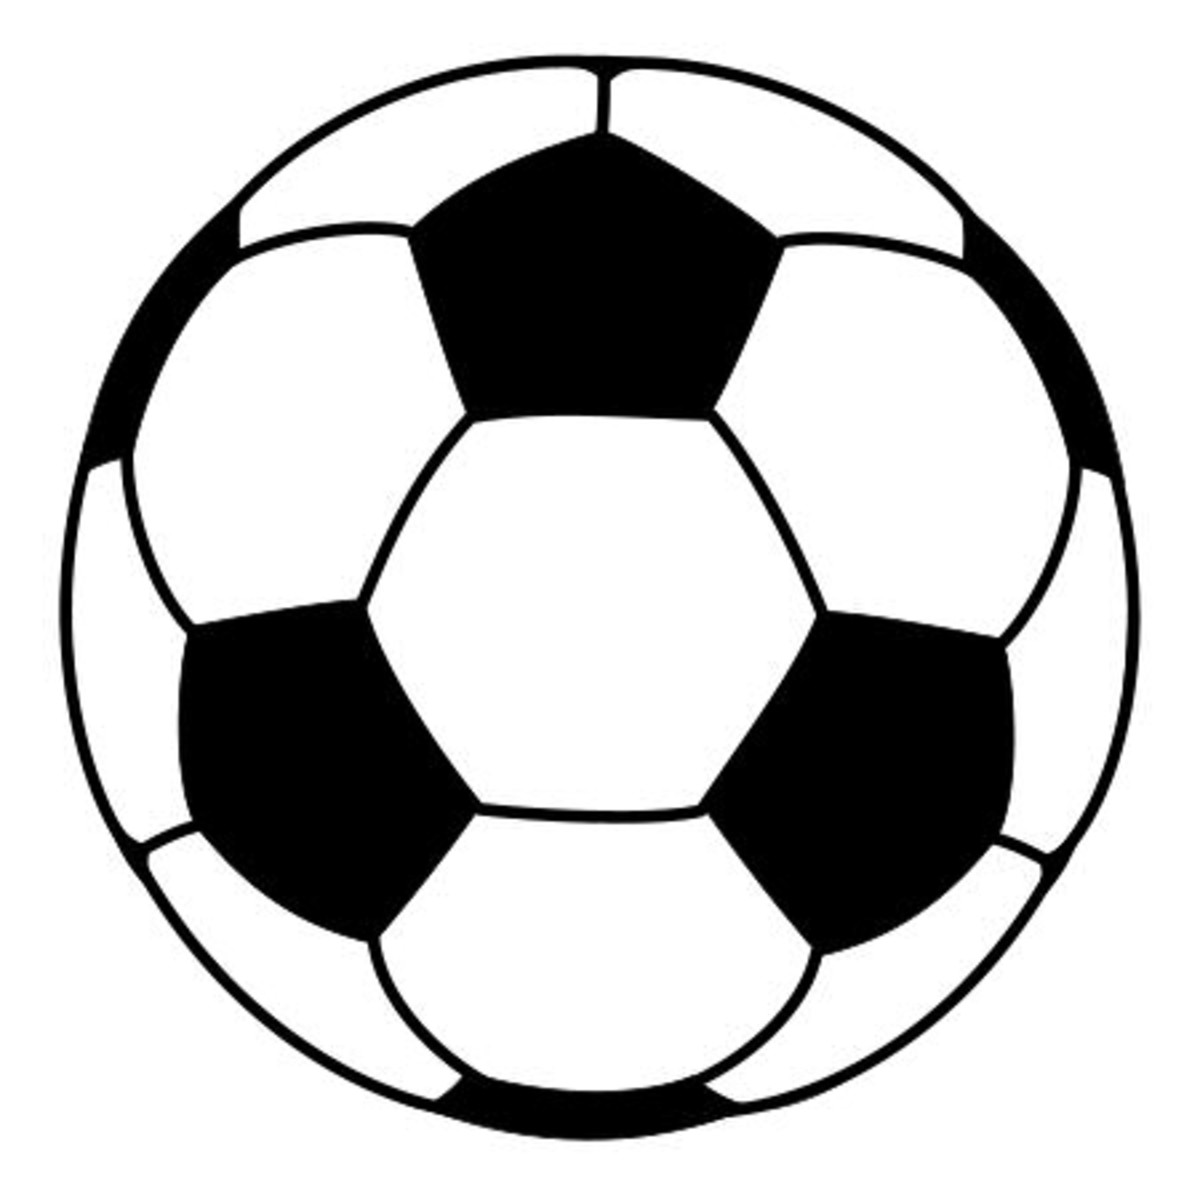 Football Skills a Practical Lesson Plan for Ks1 and Ks2